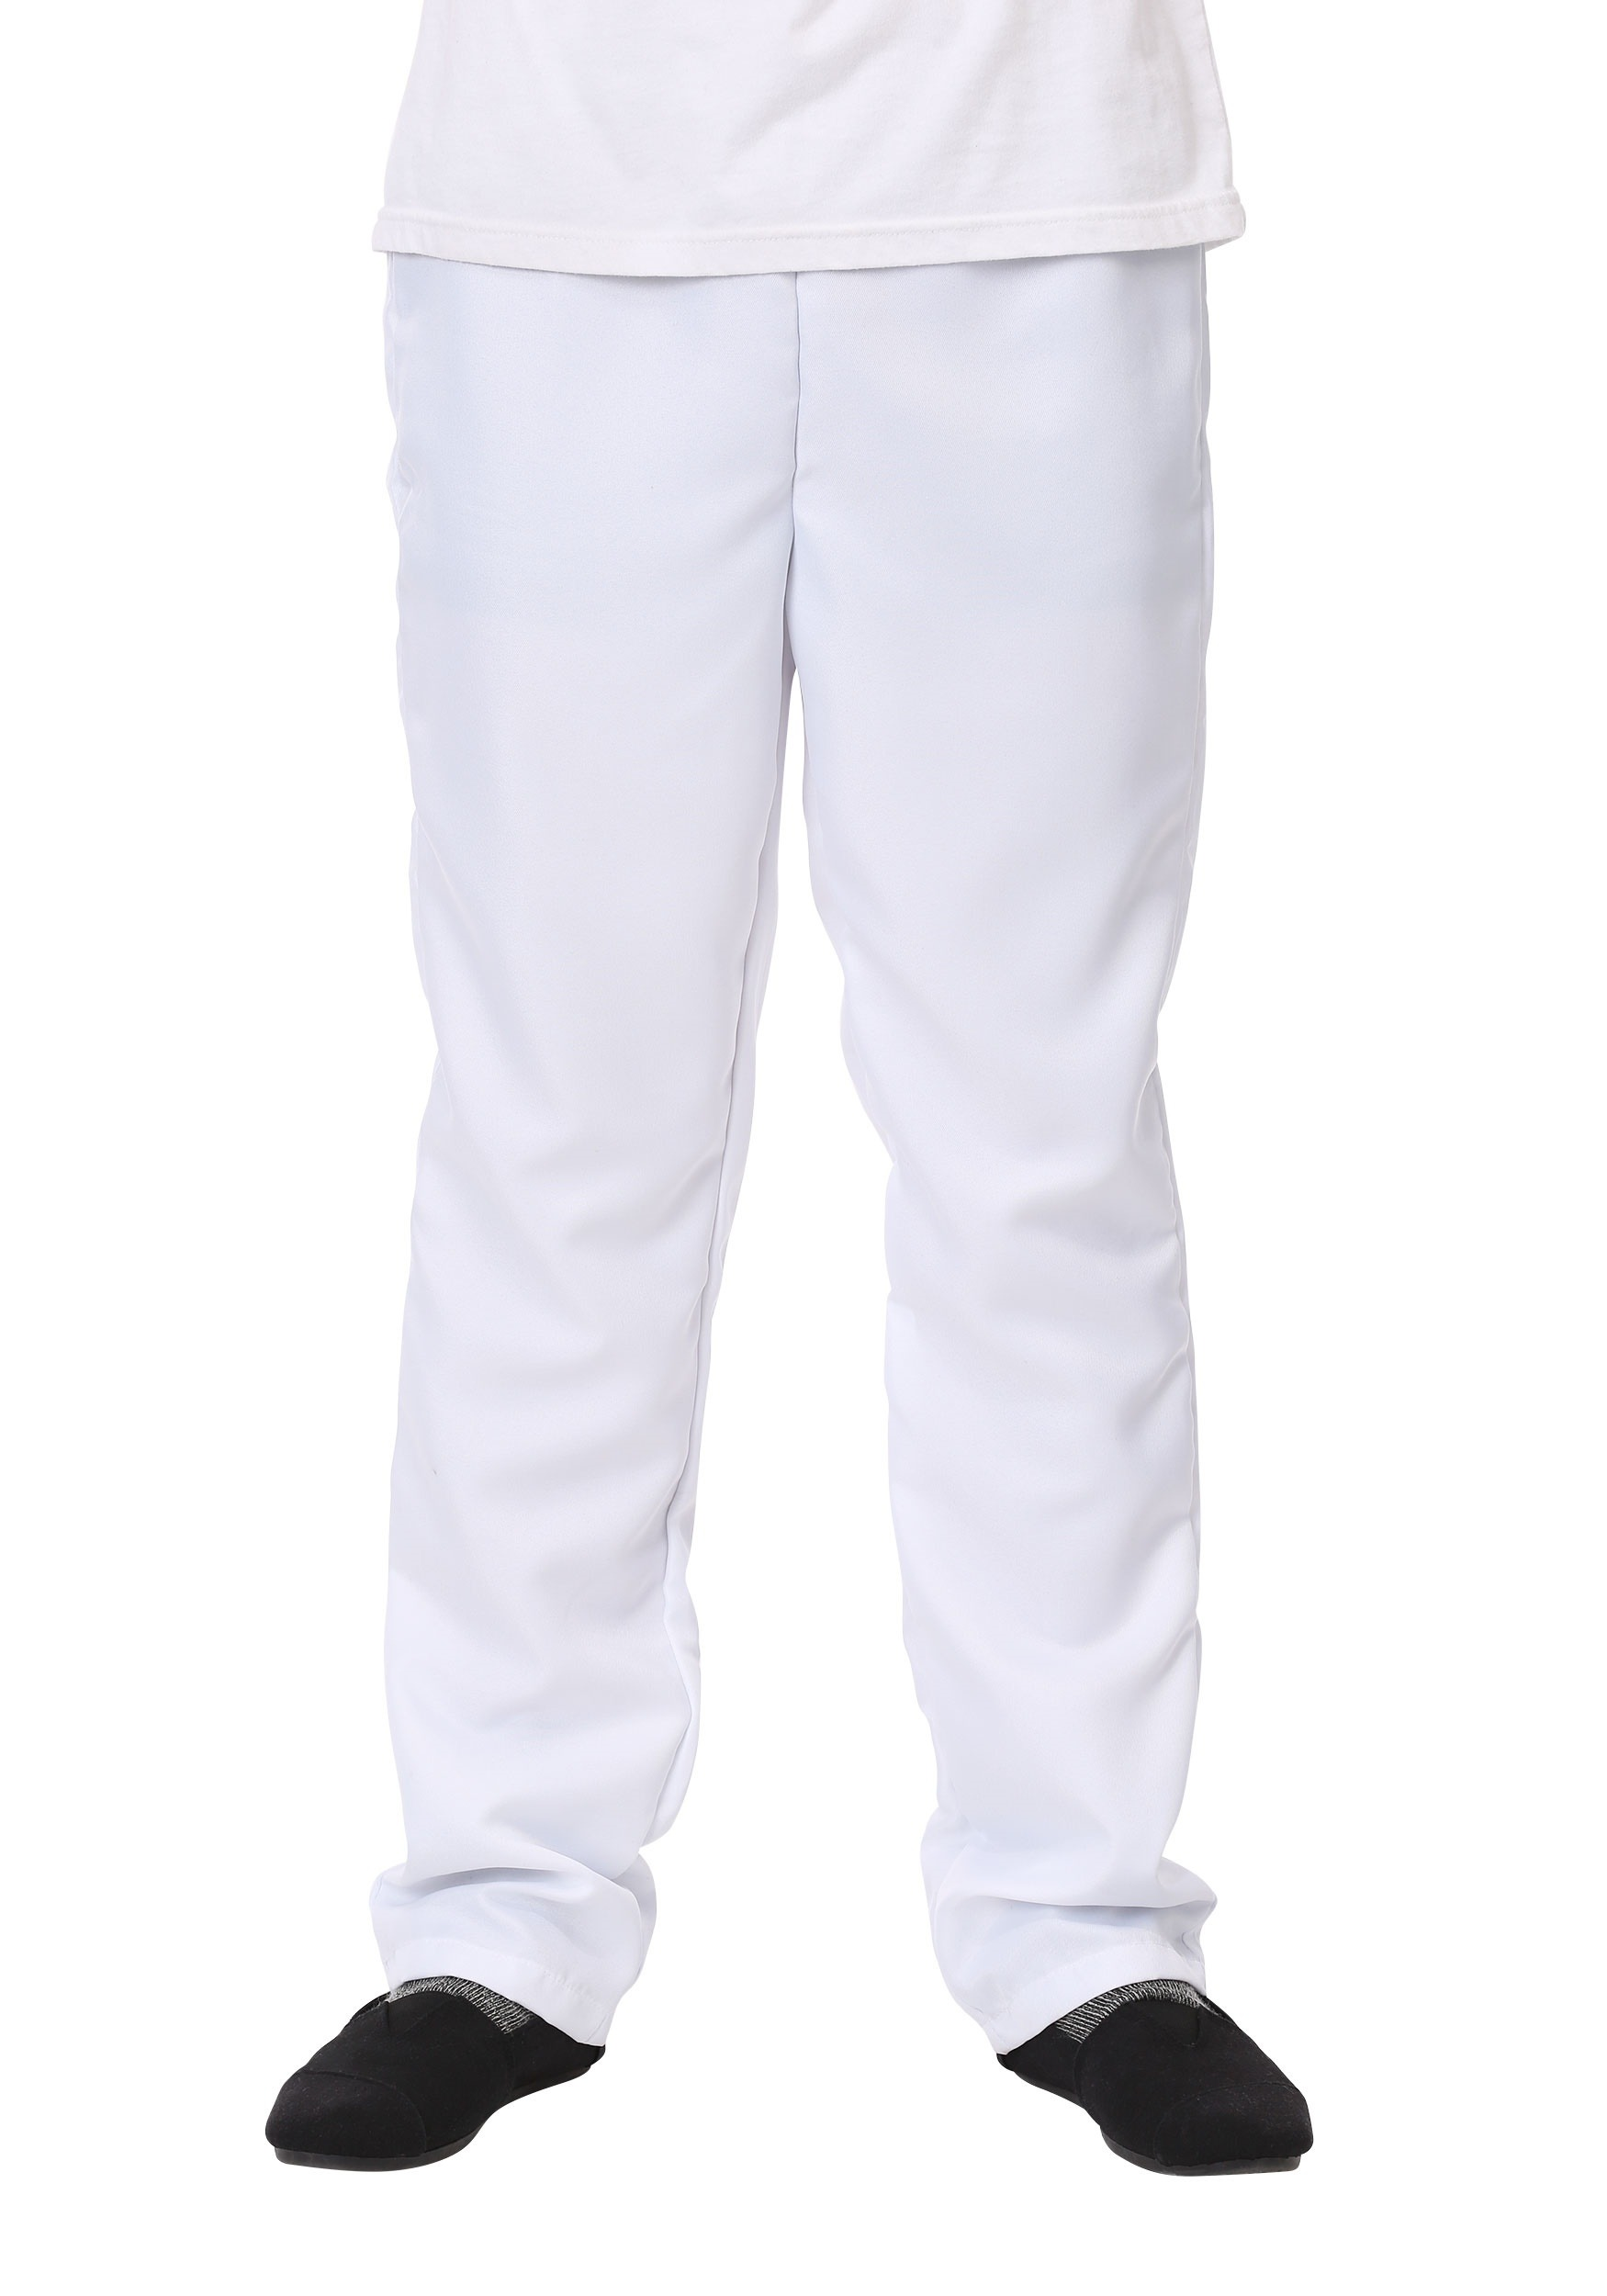 Men's White Pants - Plain White Pants